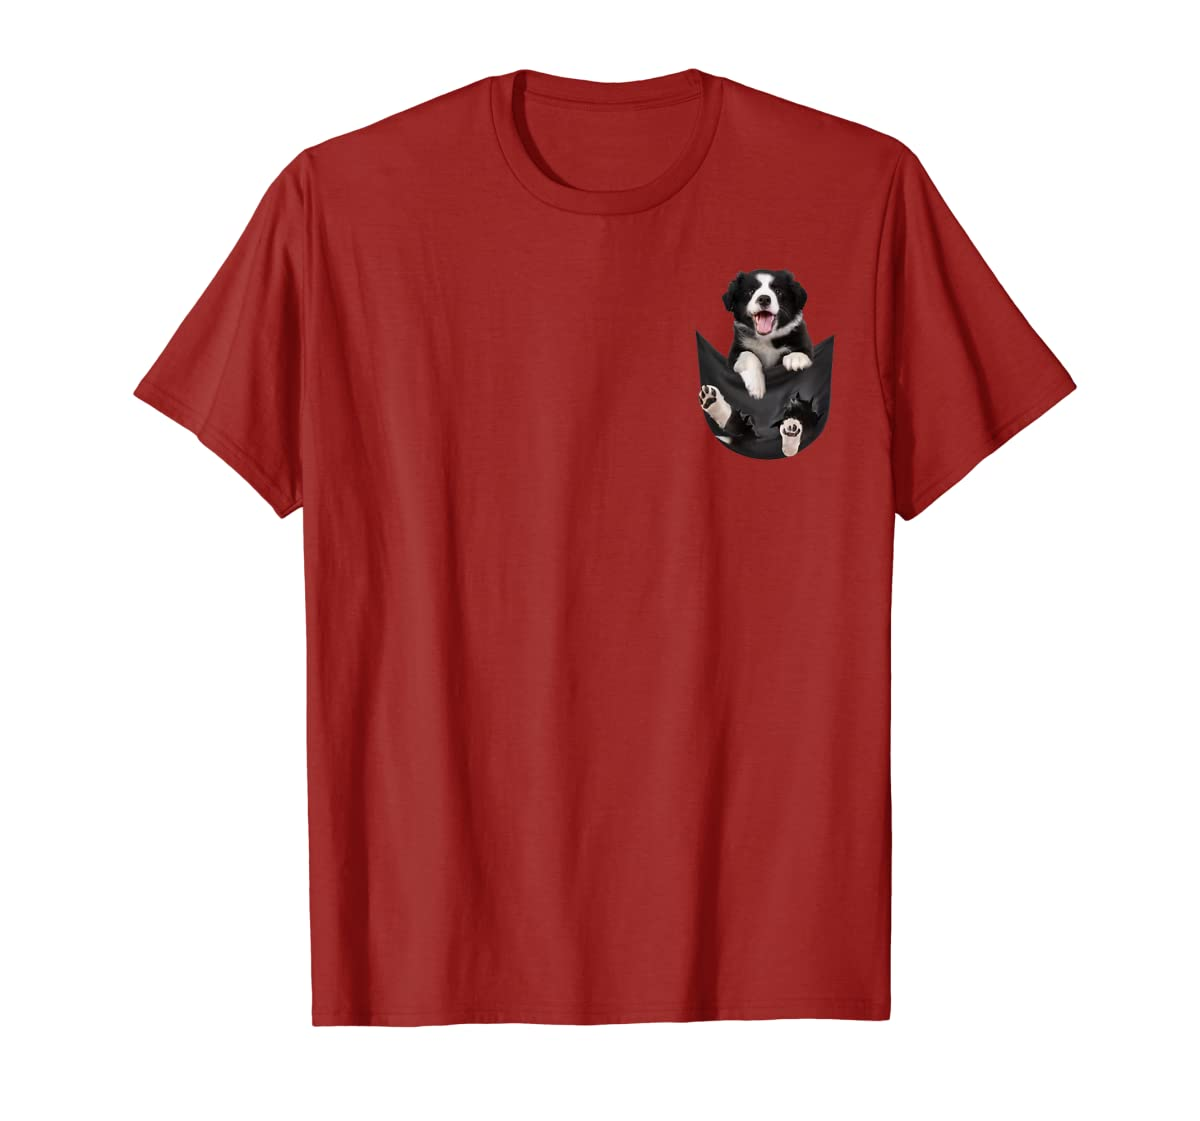 Gift dog funny cute shirt - Border Collie in pocket shirt T-Shirt-Men's T-Shirt-Red